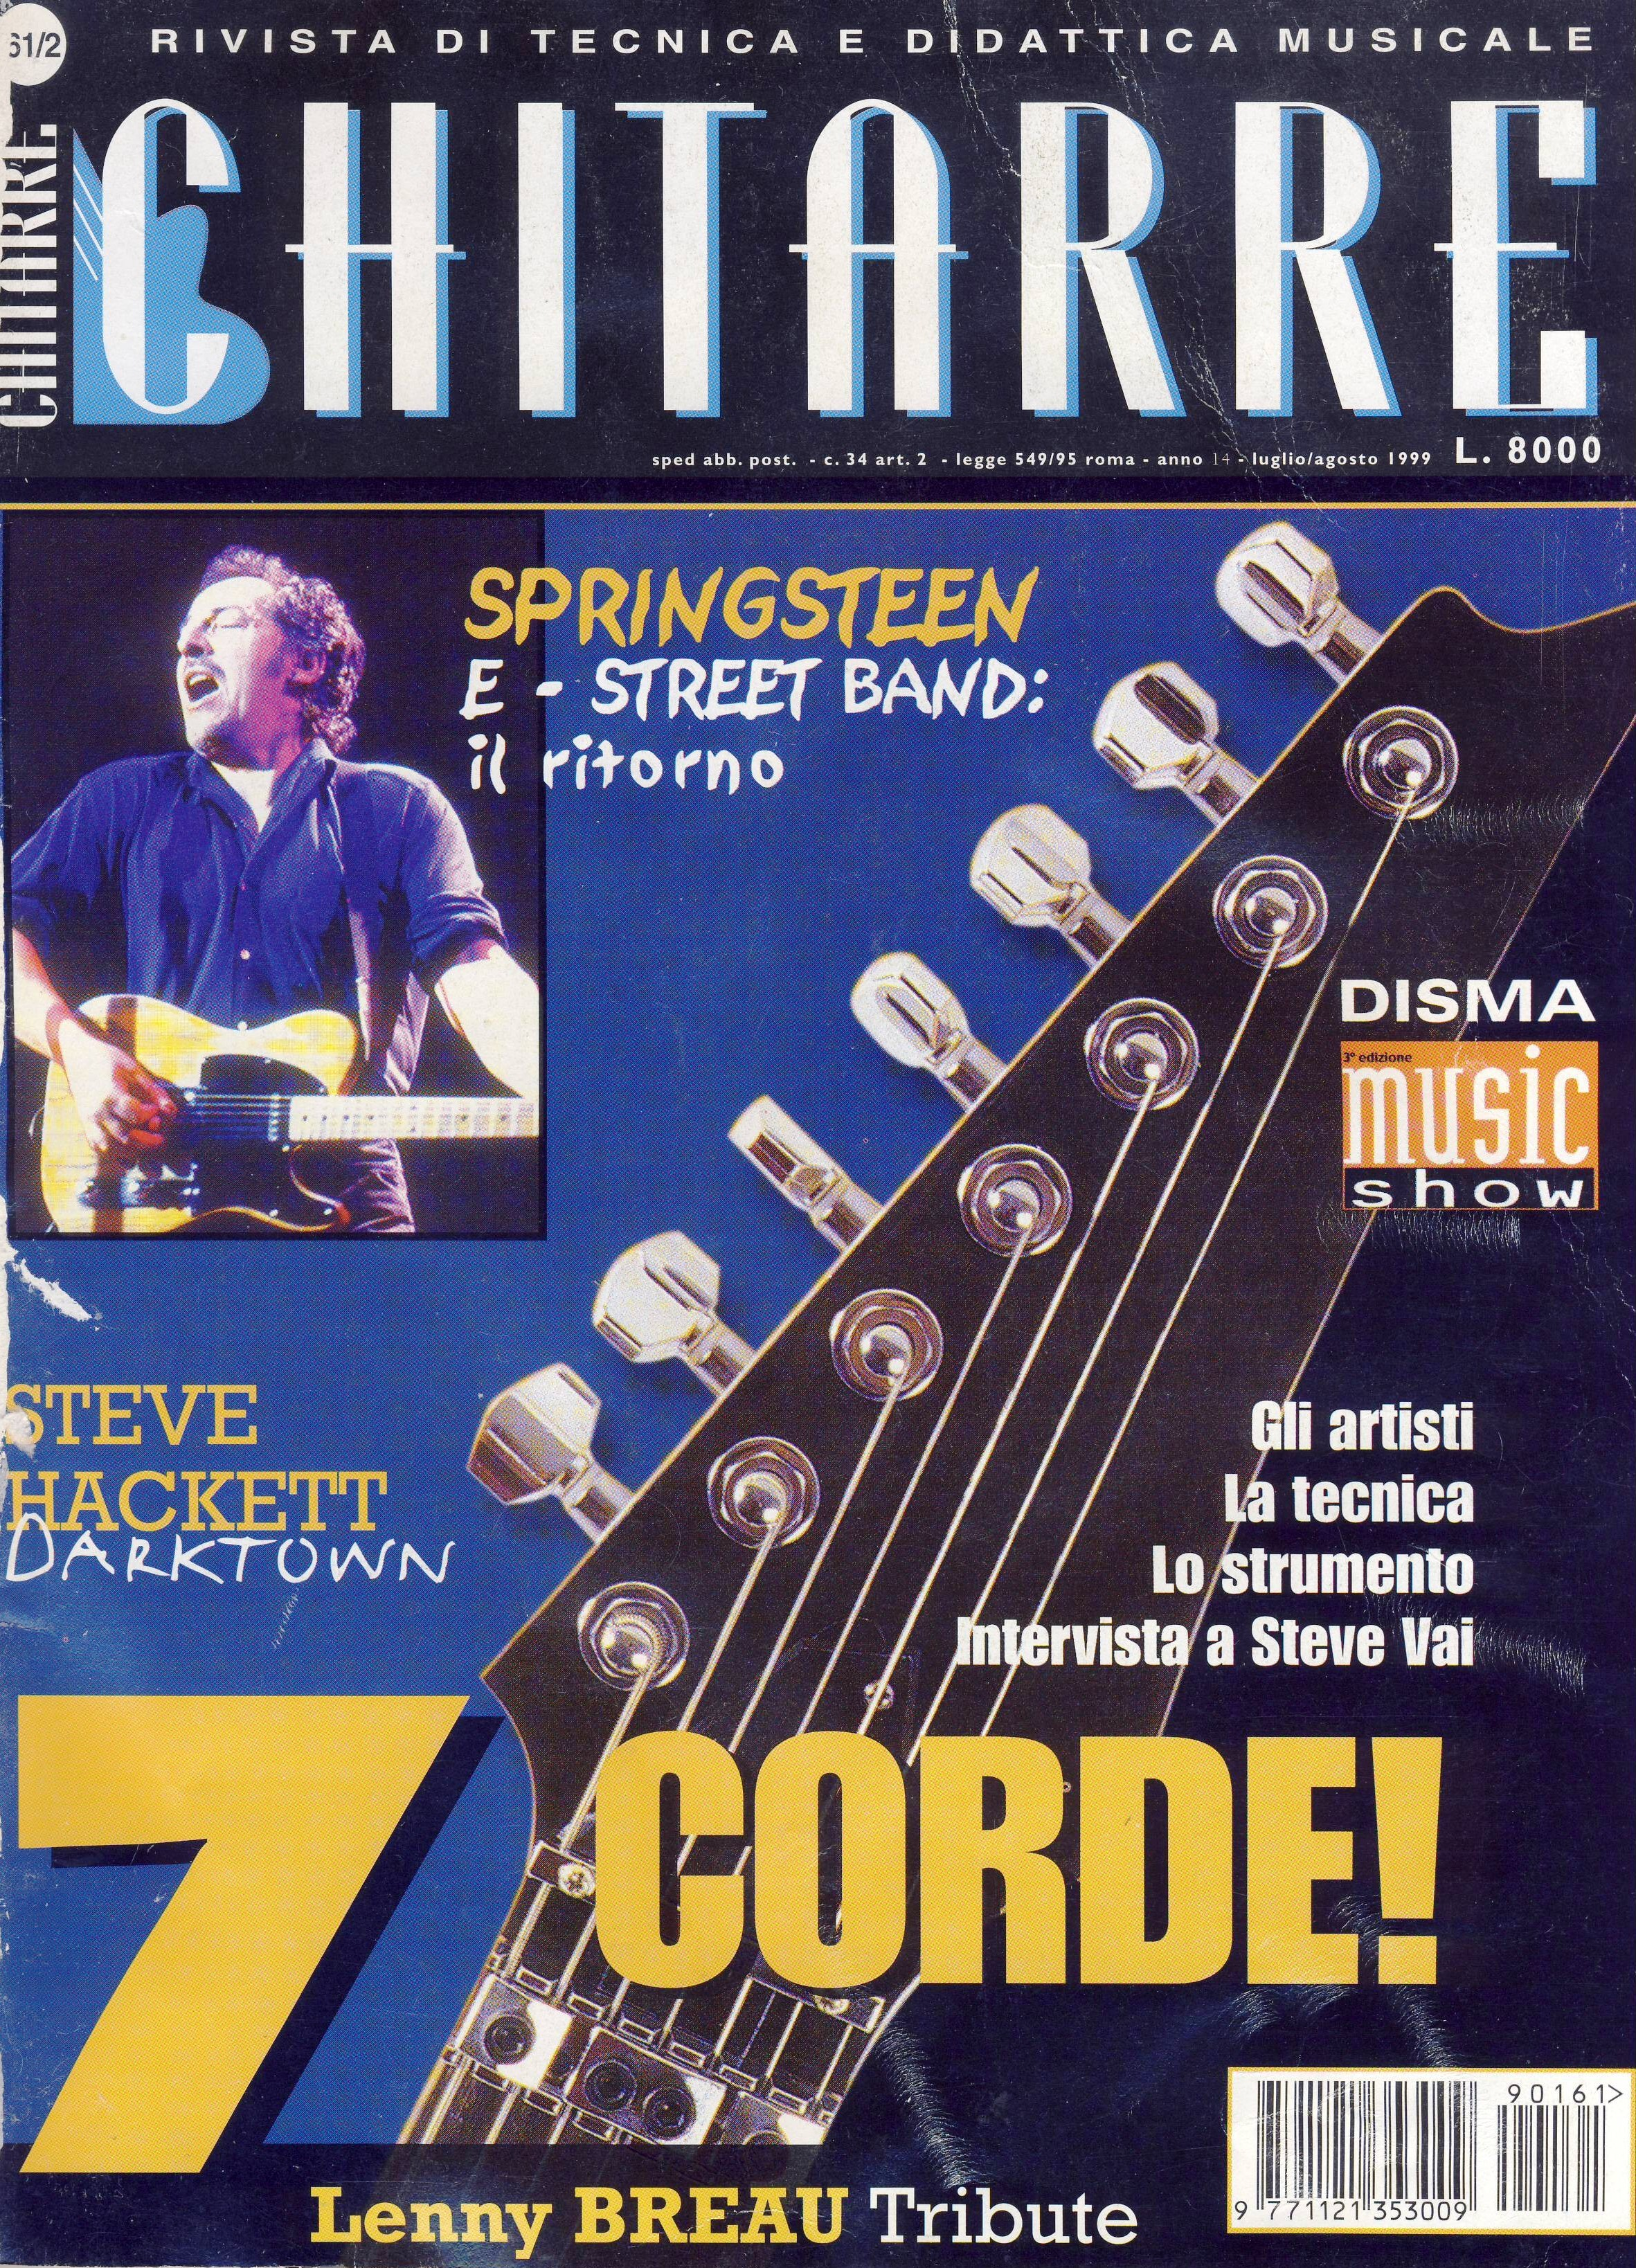 Bruce springsteen italian magazines collection chitarre for Chitarre magazine